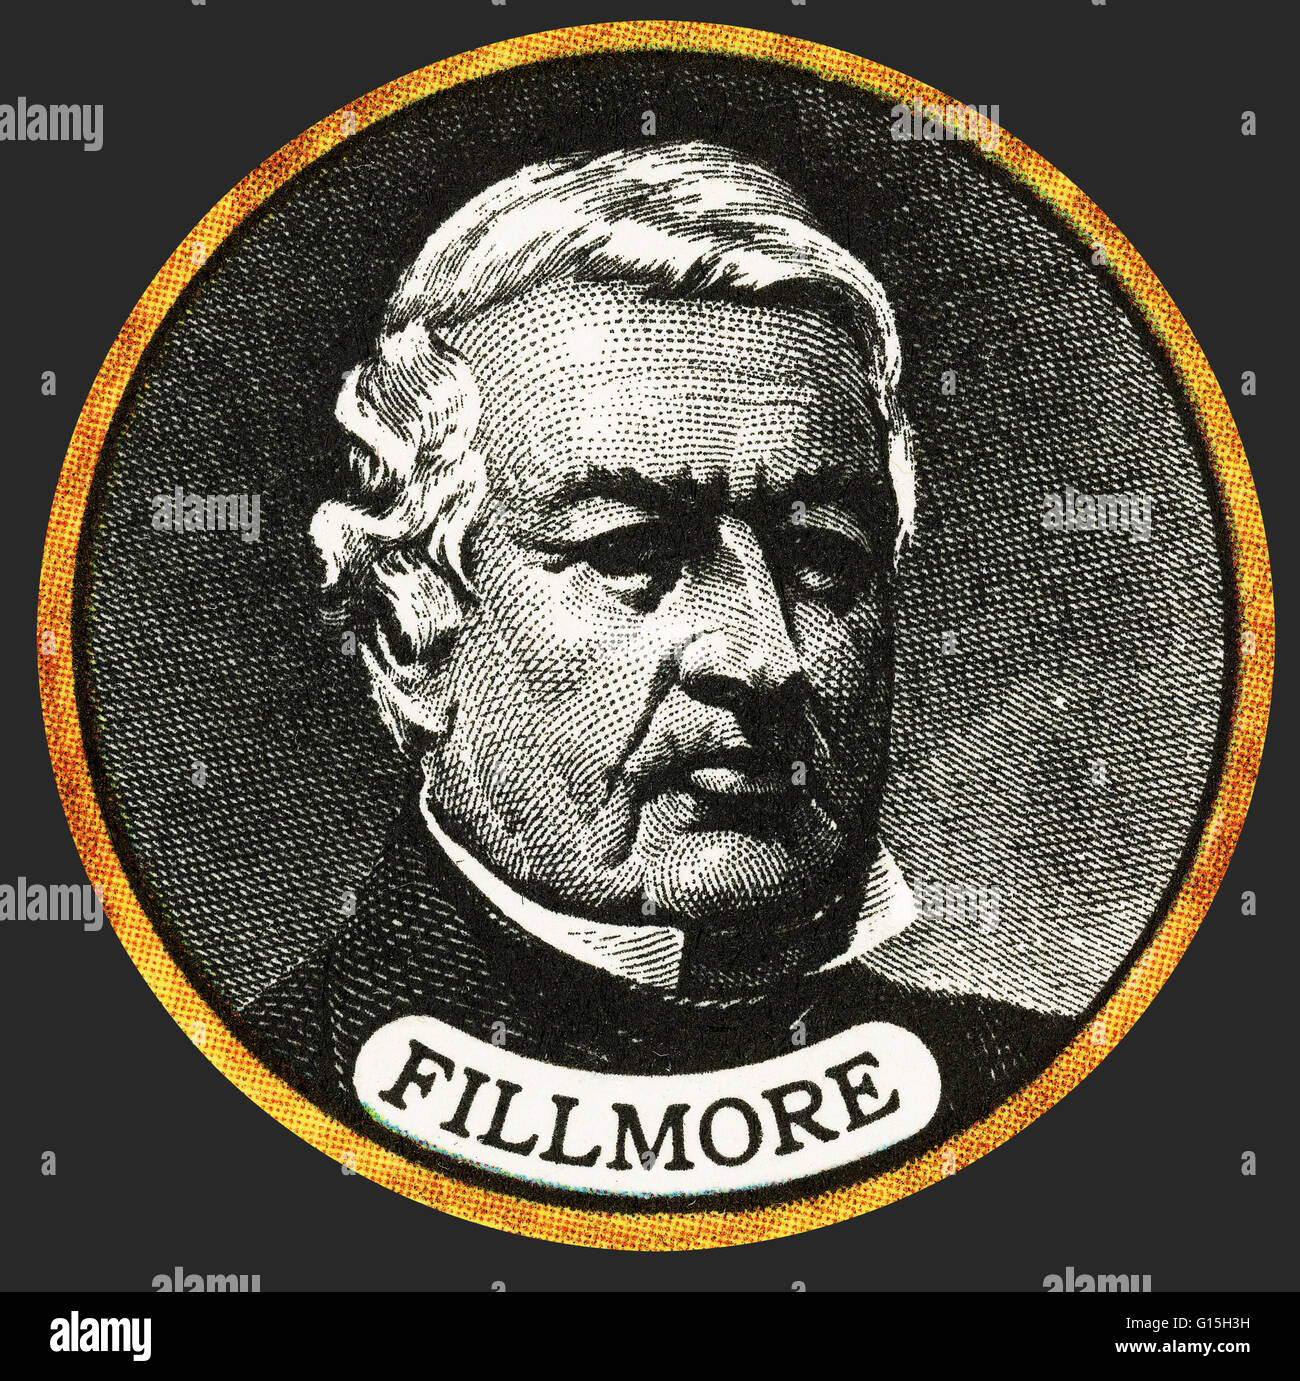 Millard Fillmore (January 7, 1800 - March 8, 1874) was the 13th President of the United States (1850-1853) and the Stock Photo